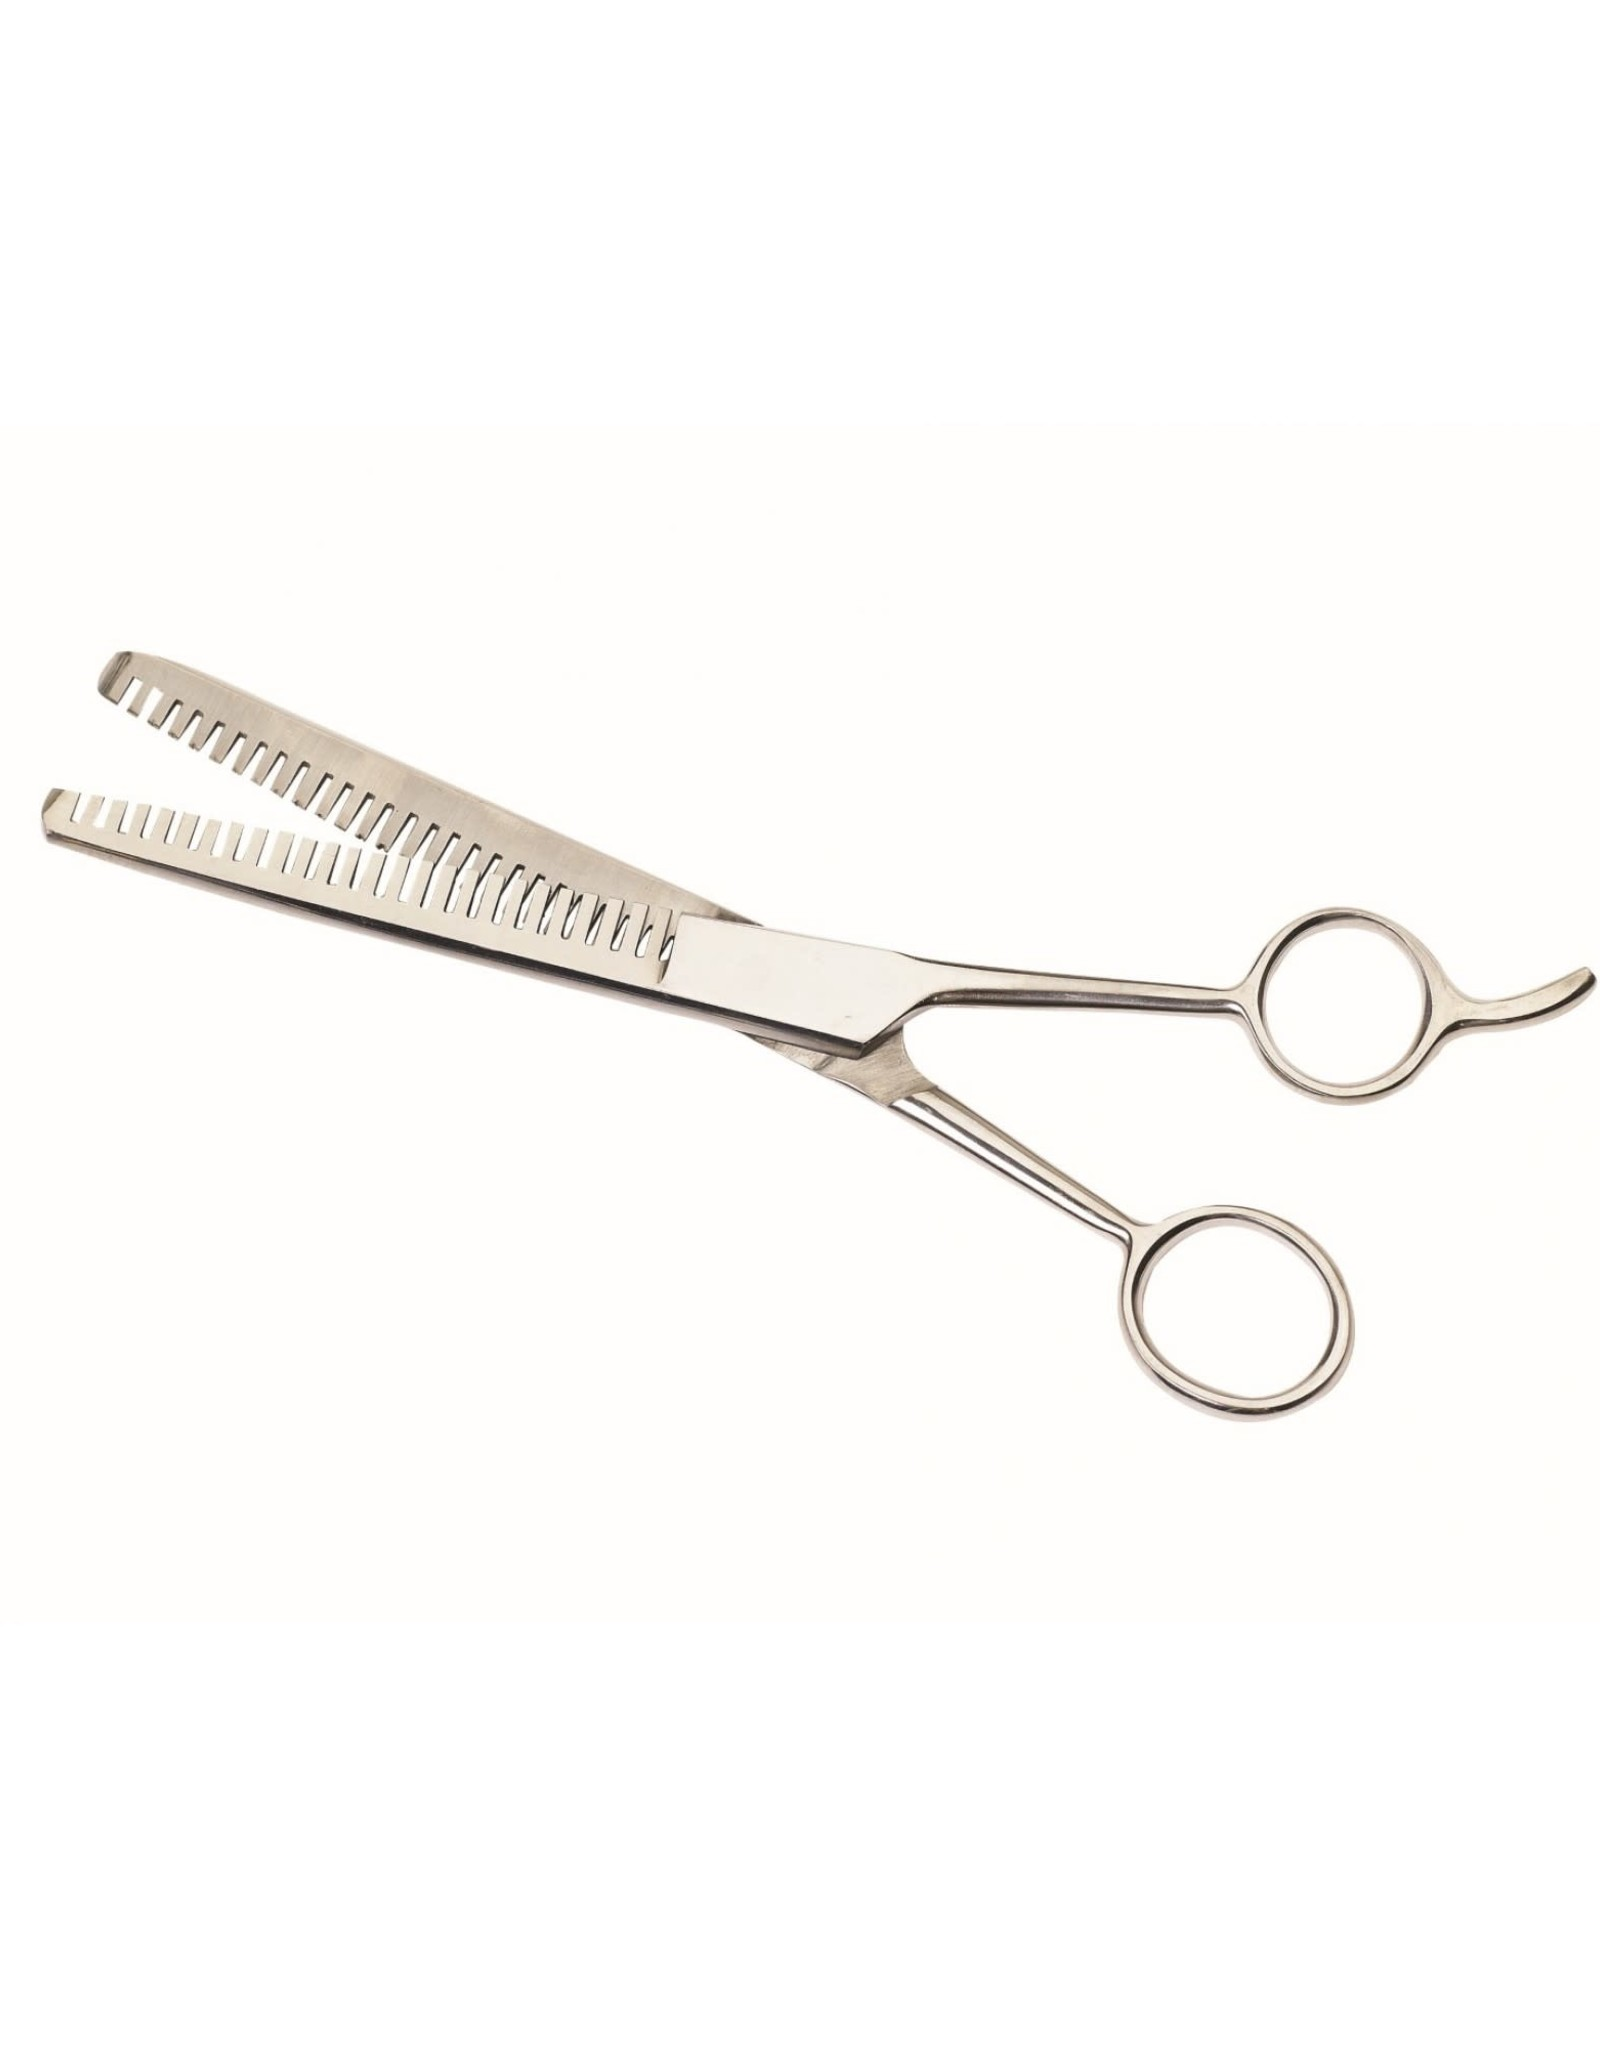 EQUI-ESSENTIALS STAINLESS STEEL THINNING SHEARS